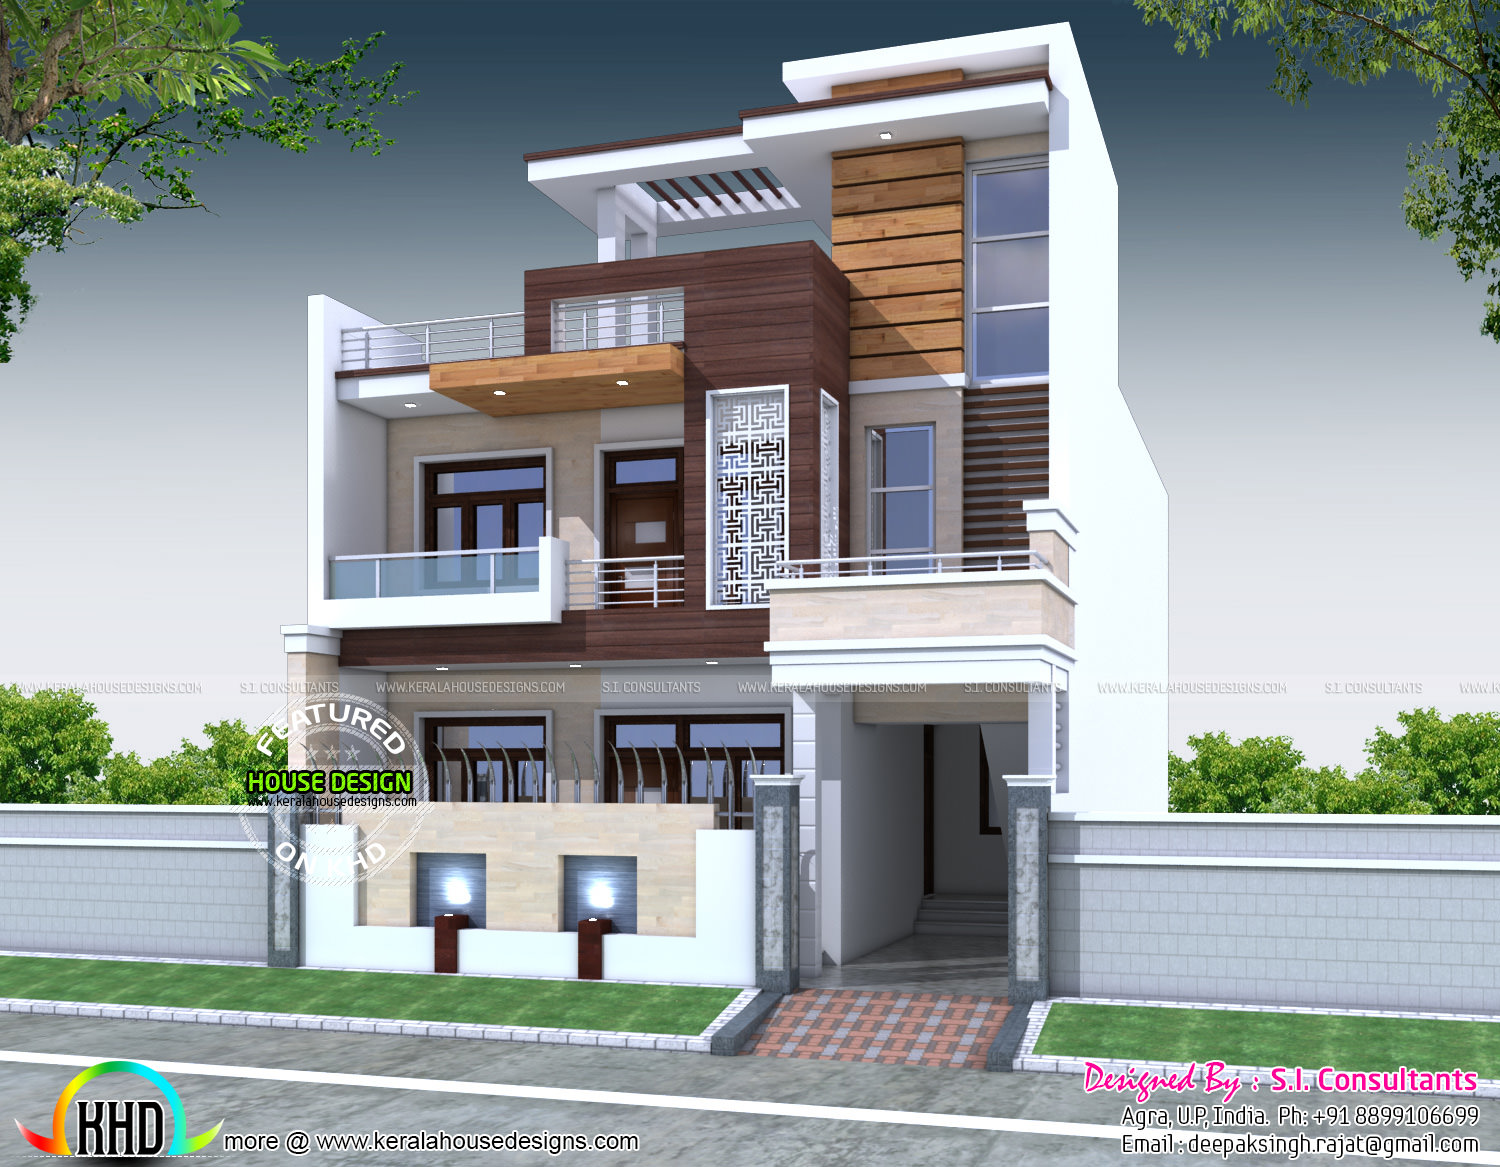 Decorative 5 bedroom house architecture kerala home for Architectural plans for houses in india